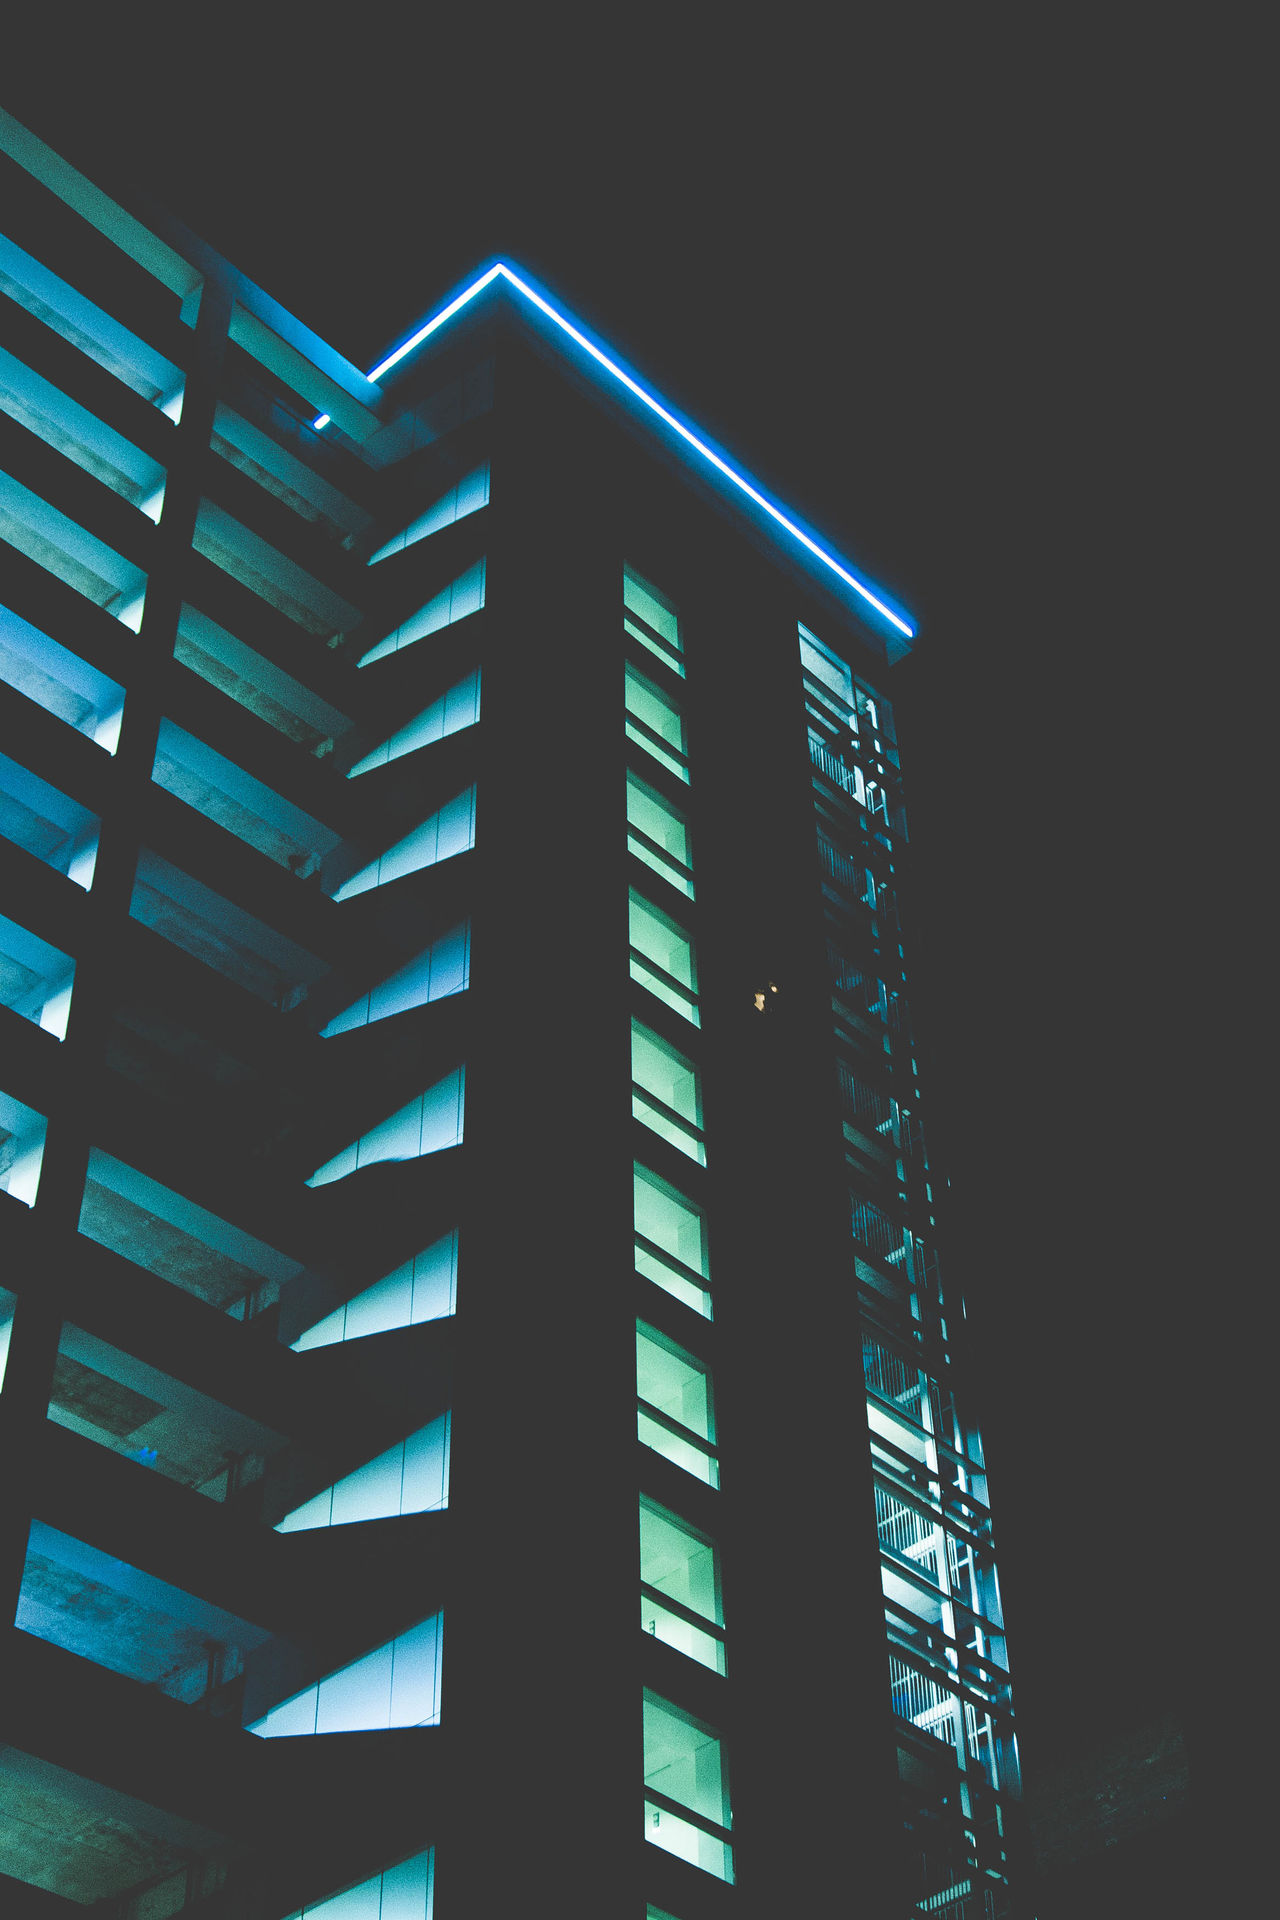 Architecture Bluelight Building Built Structure Greenlight High Angle View Houston Houston Texas HoustonTX Illuminated Low Angle View Night Night Lights Night Photography Nightphotography No People Outdoors Parking Garage Photo Photographer Photography Photooftheday Shadow Street Streetphotography